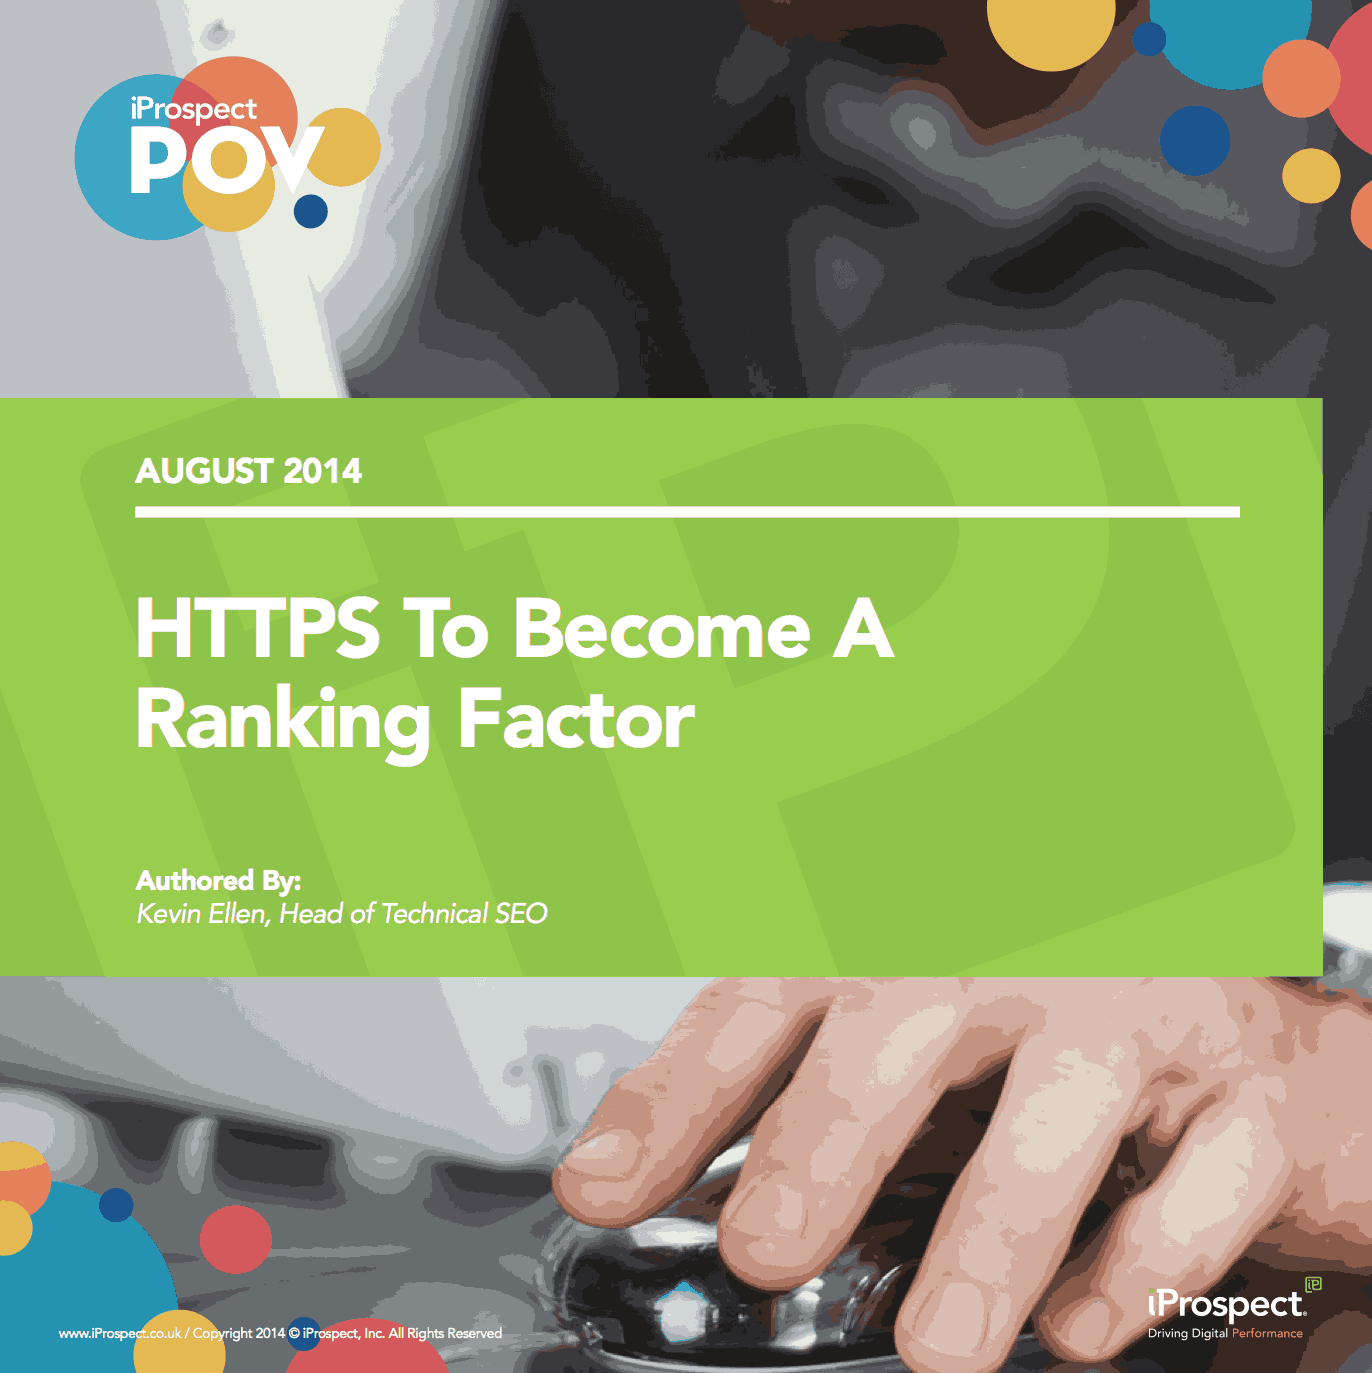 HTTPS to become a ranking factor